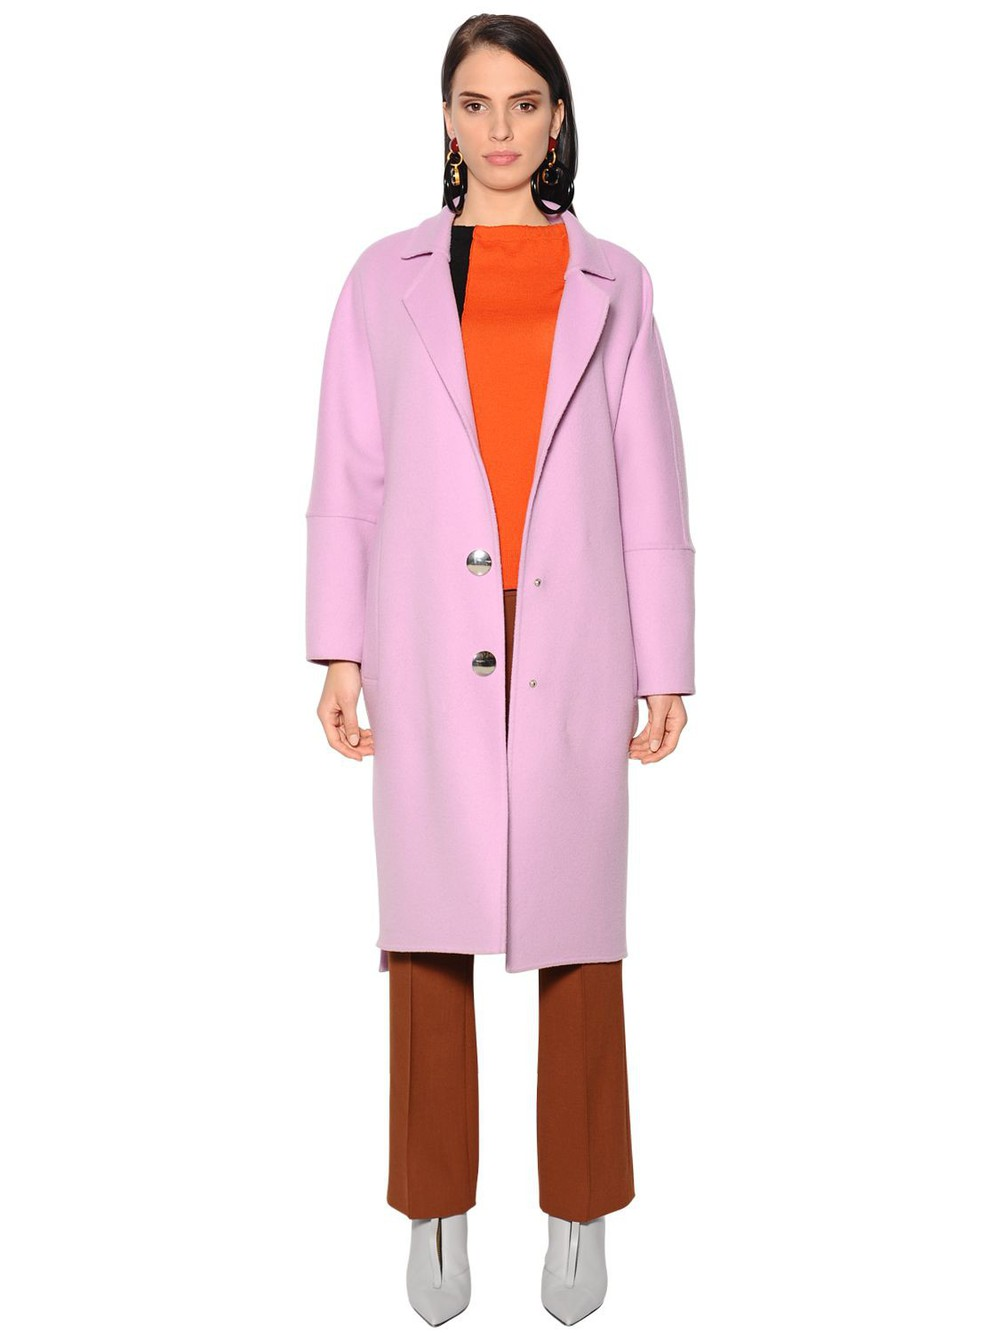 MARNI Oversized Wool Blend Coat in pink